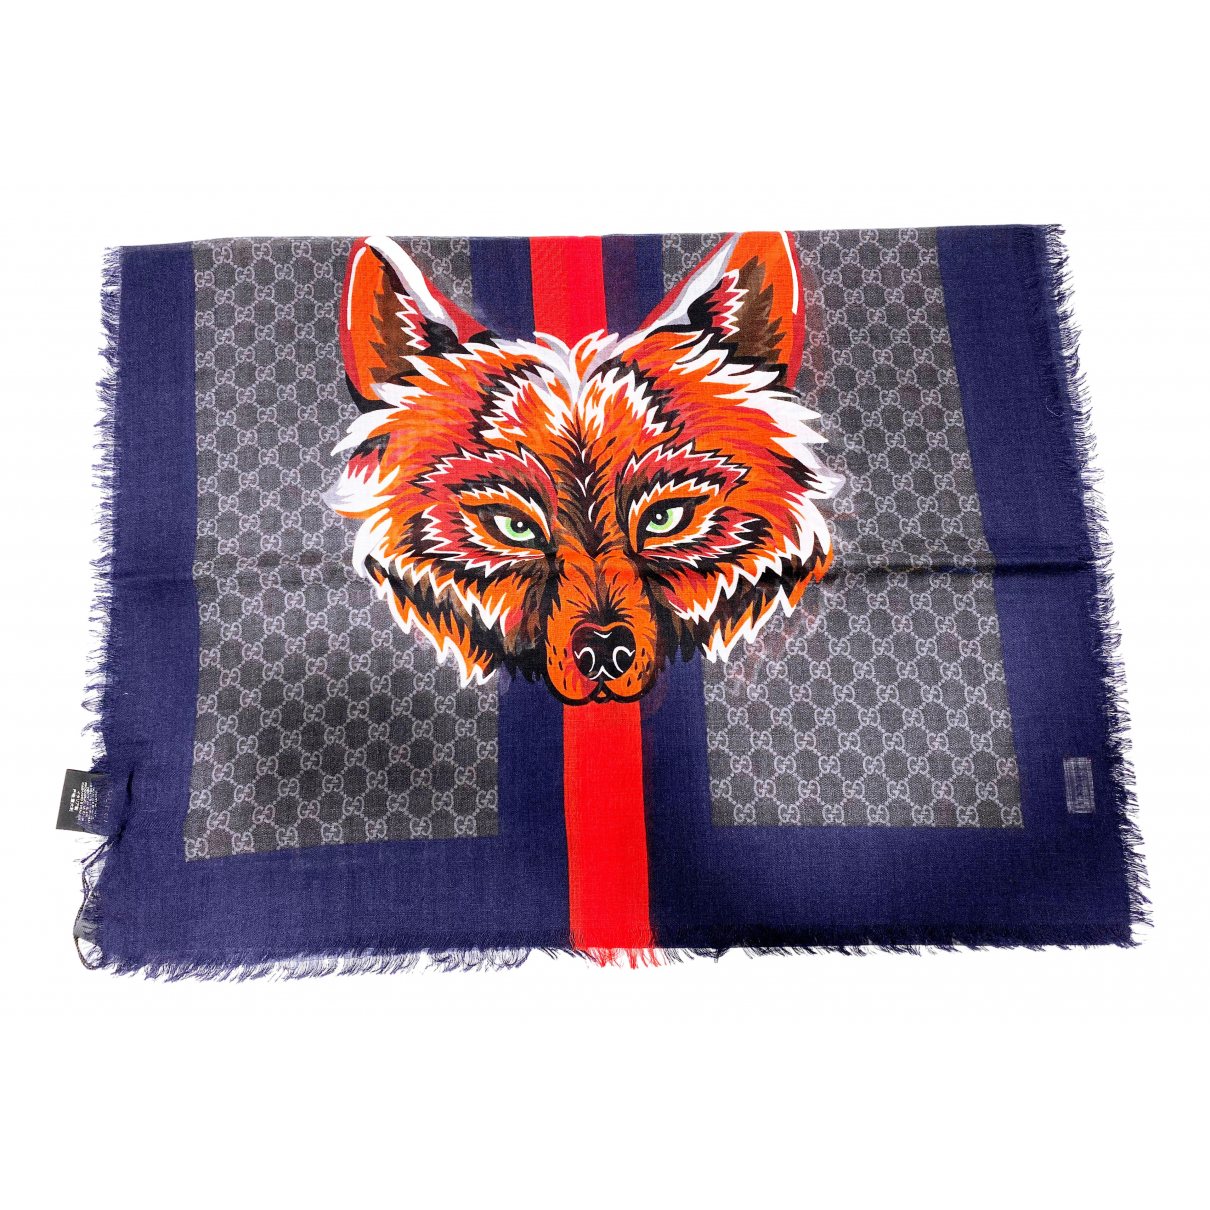 Gucci N Multicolour Wool scarf & pocket squares for Men N